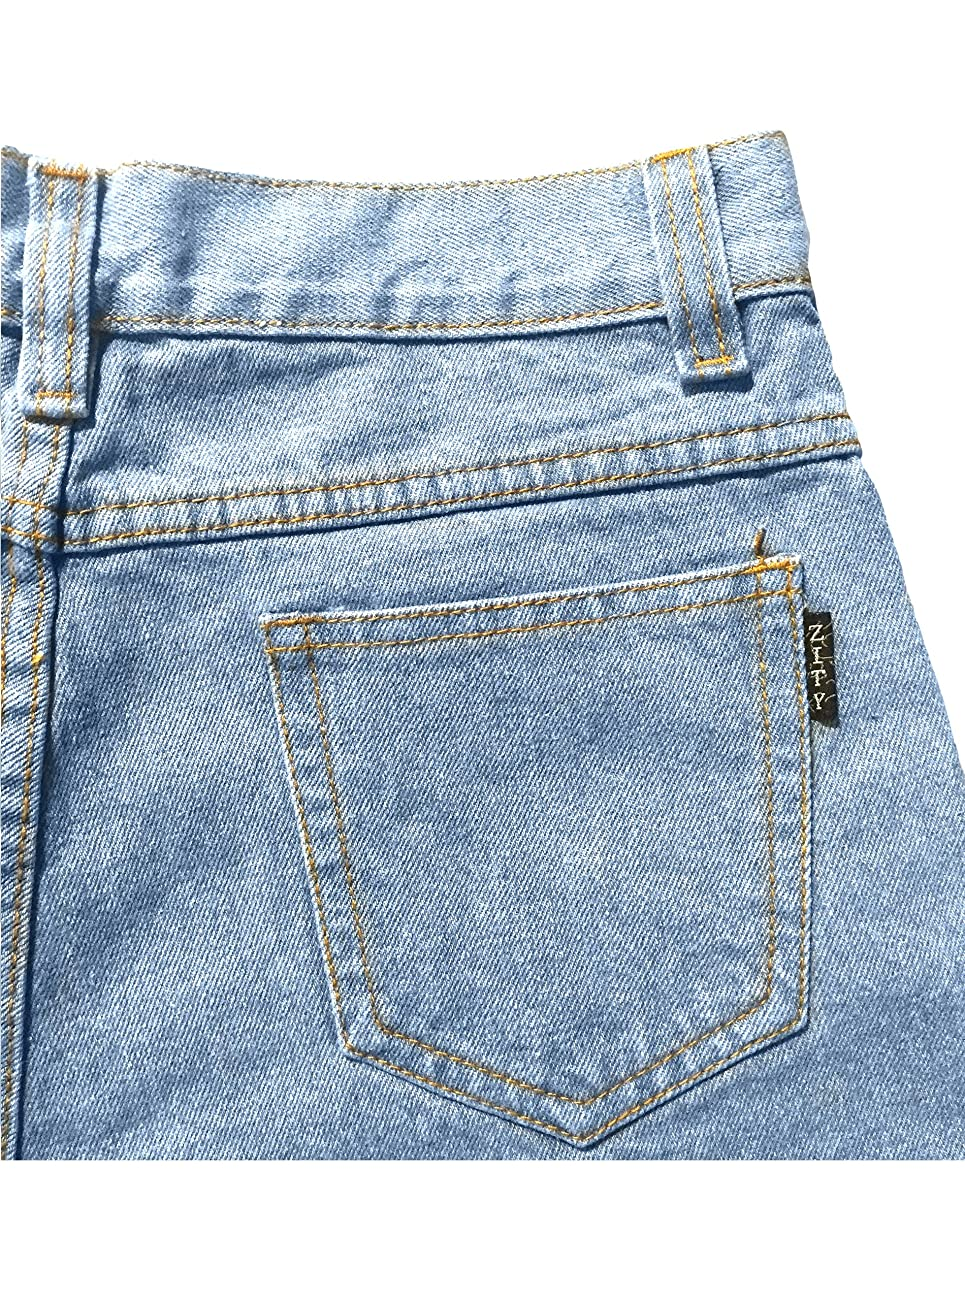 Zity Lady Women Retro Girl High Waisted Oversize Crimping Boyfriend Jeans Shorts Pant 5